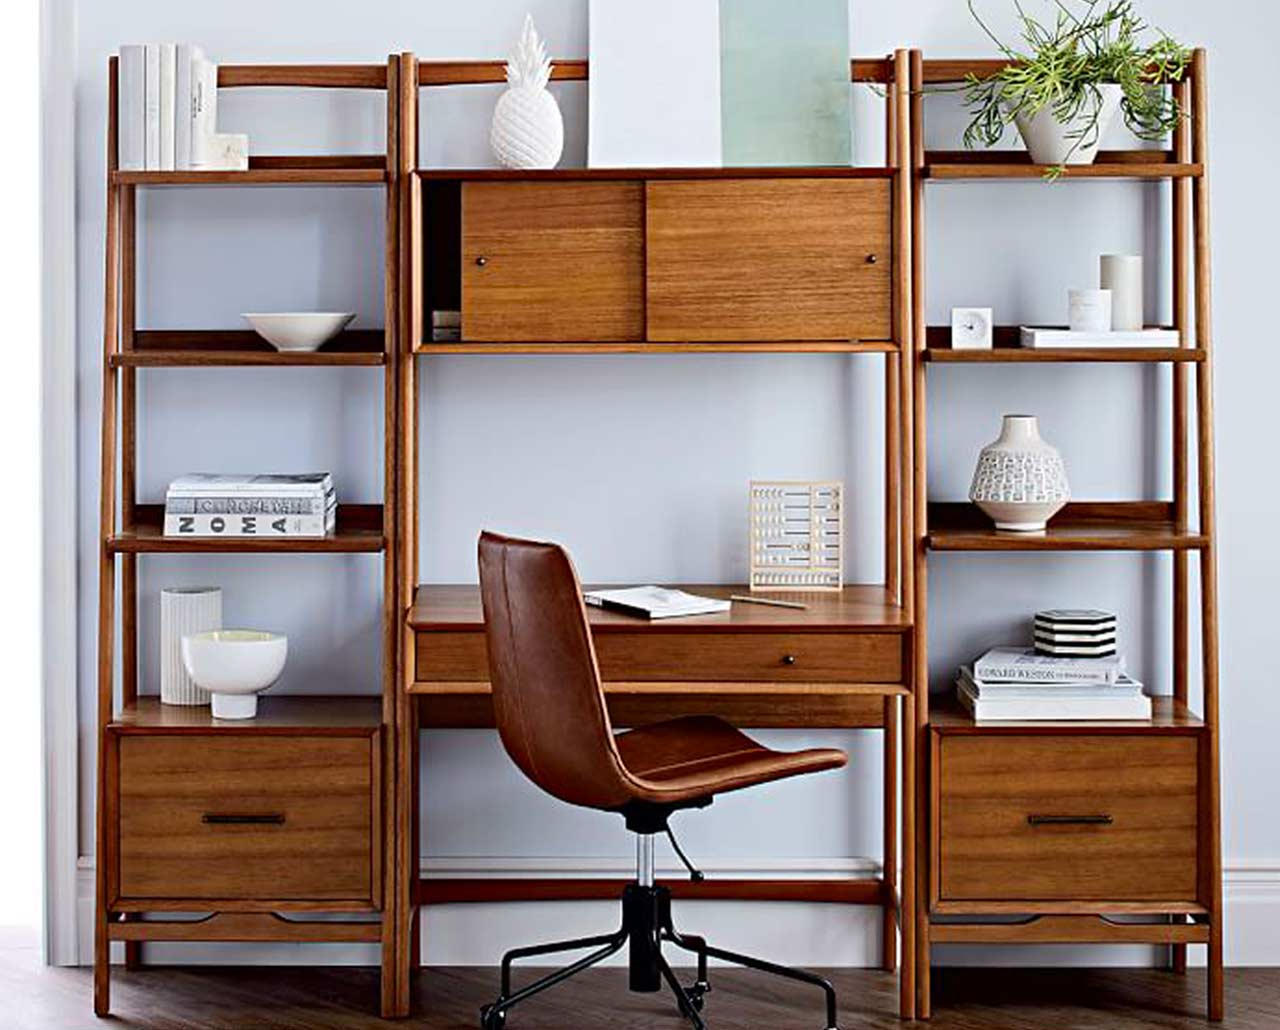 west elm office furniture. LEARN MORE ABOUT WEST ELM West Elm Office Furniture